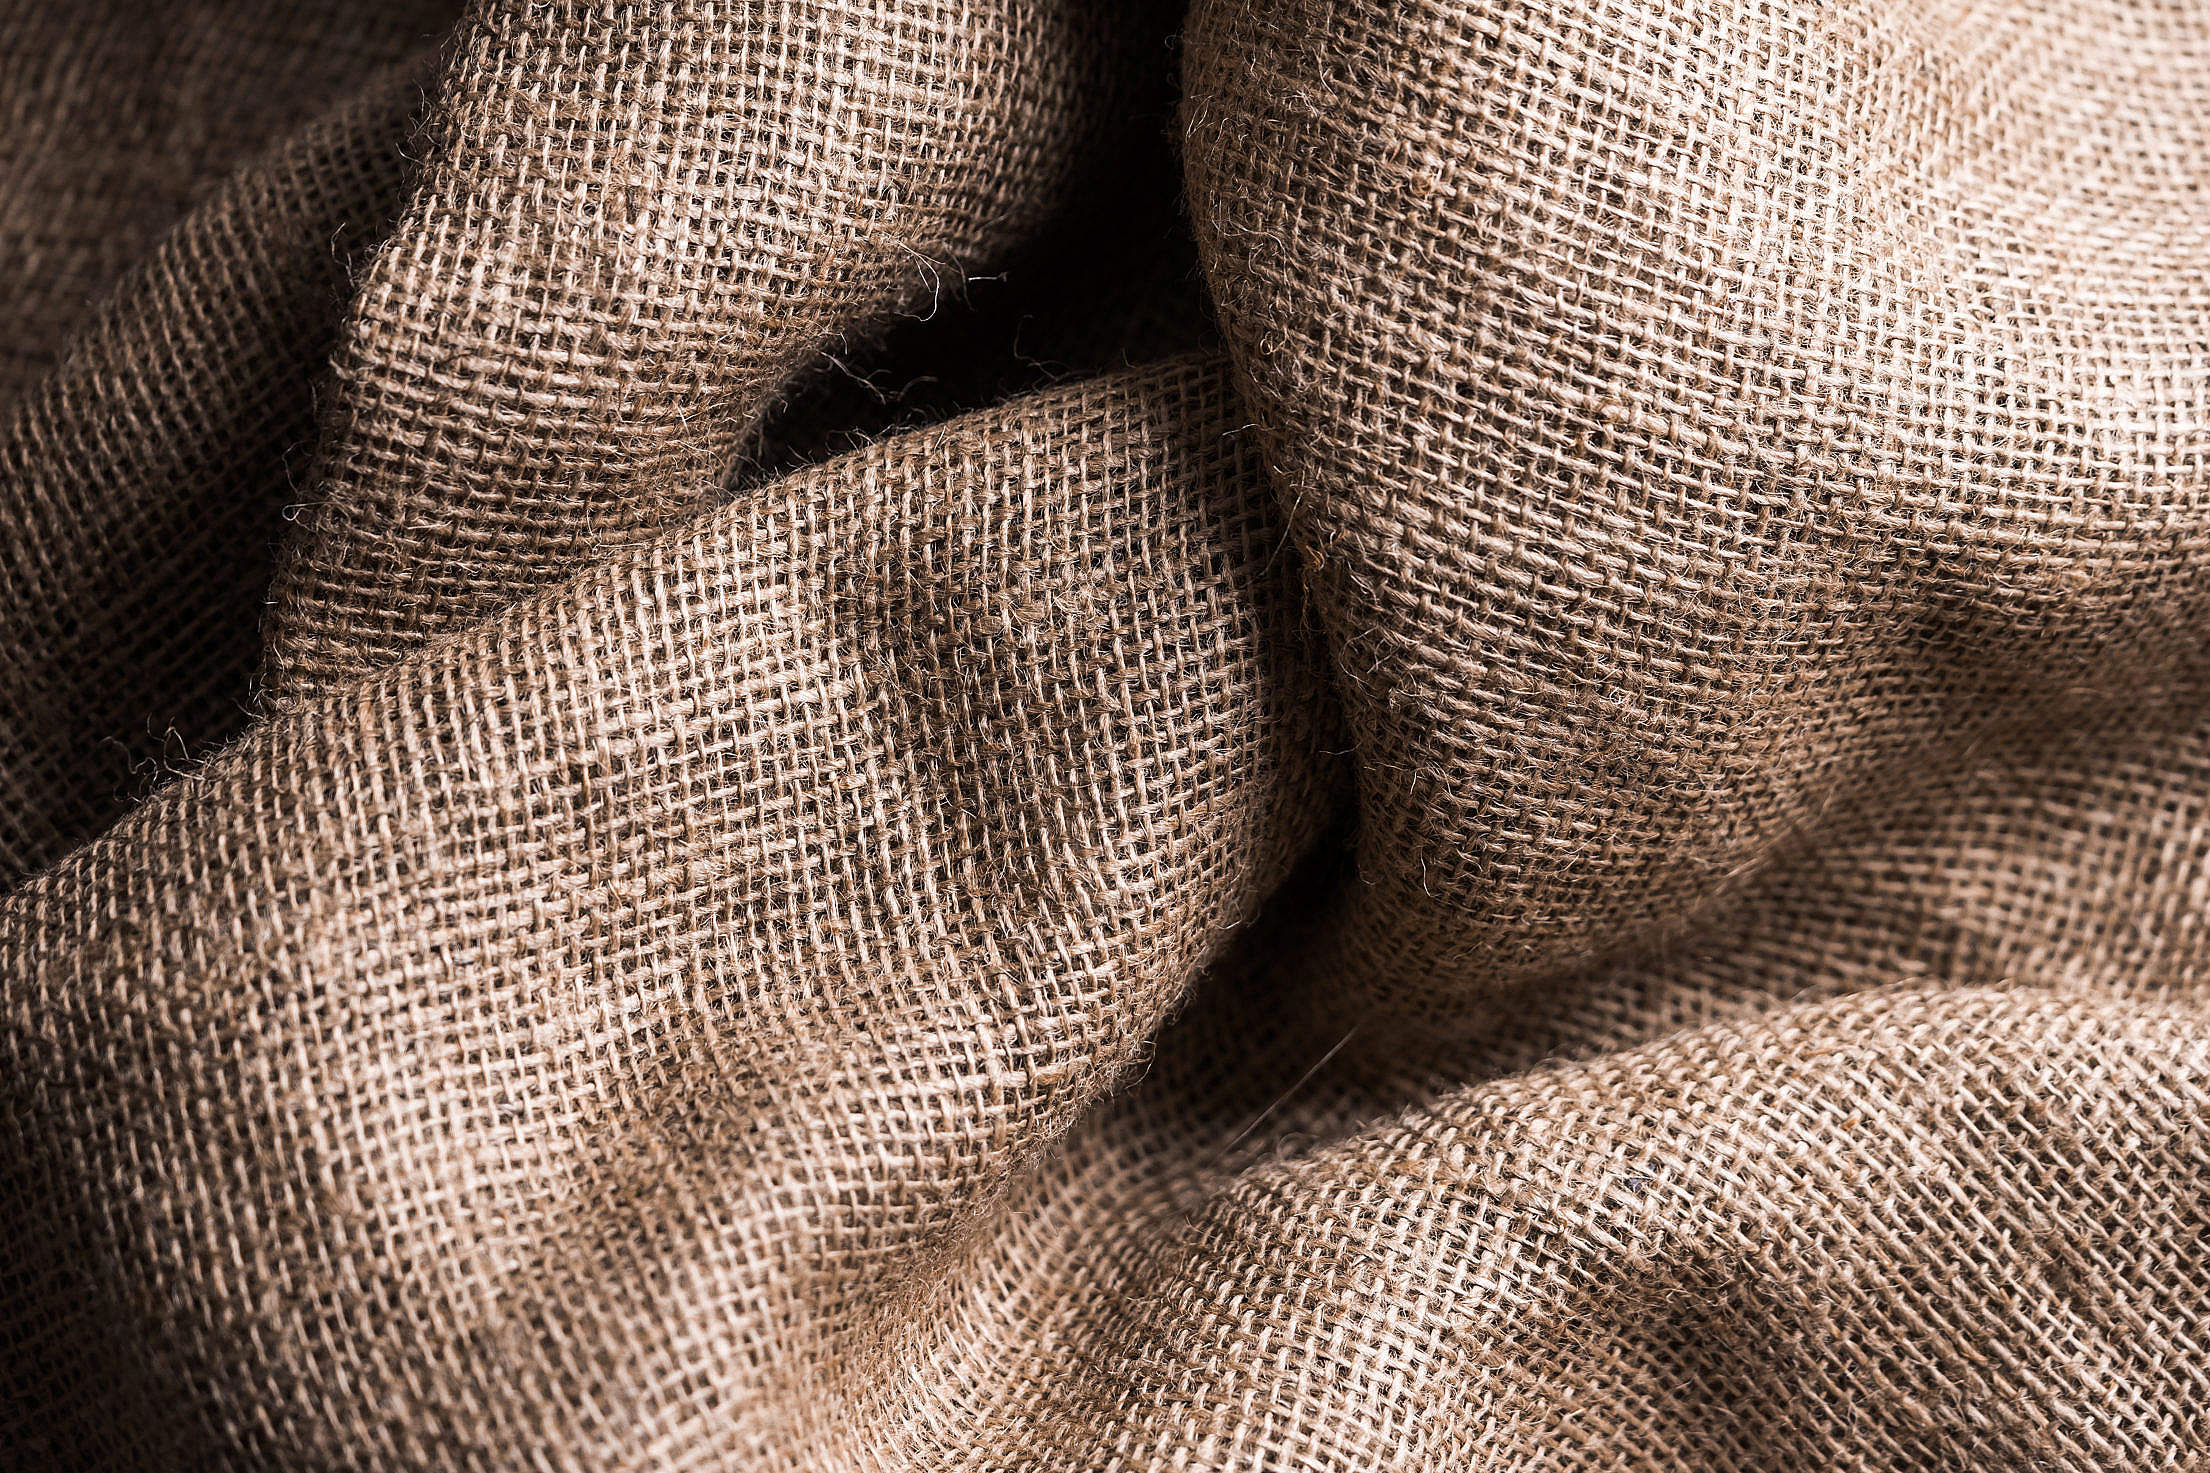 Download Sackcloth Free Stock Photo